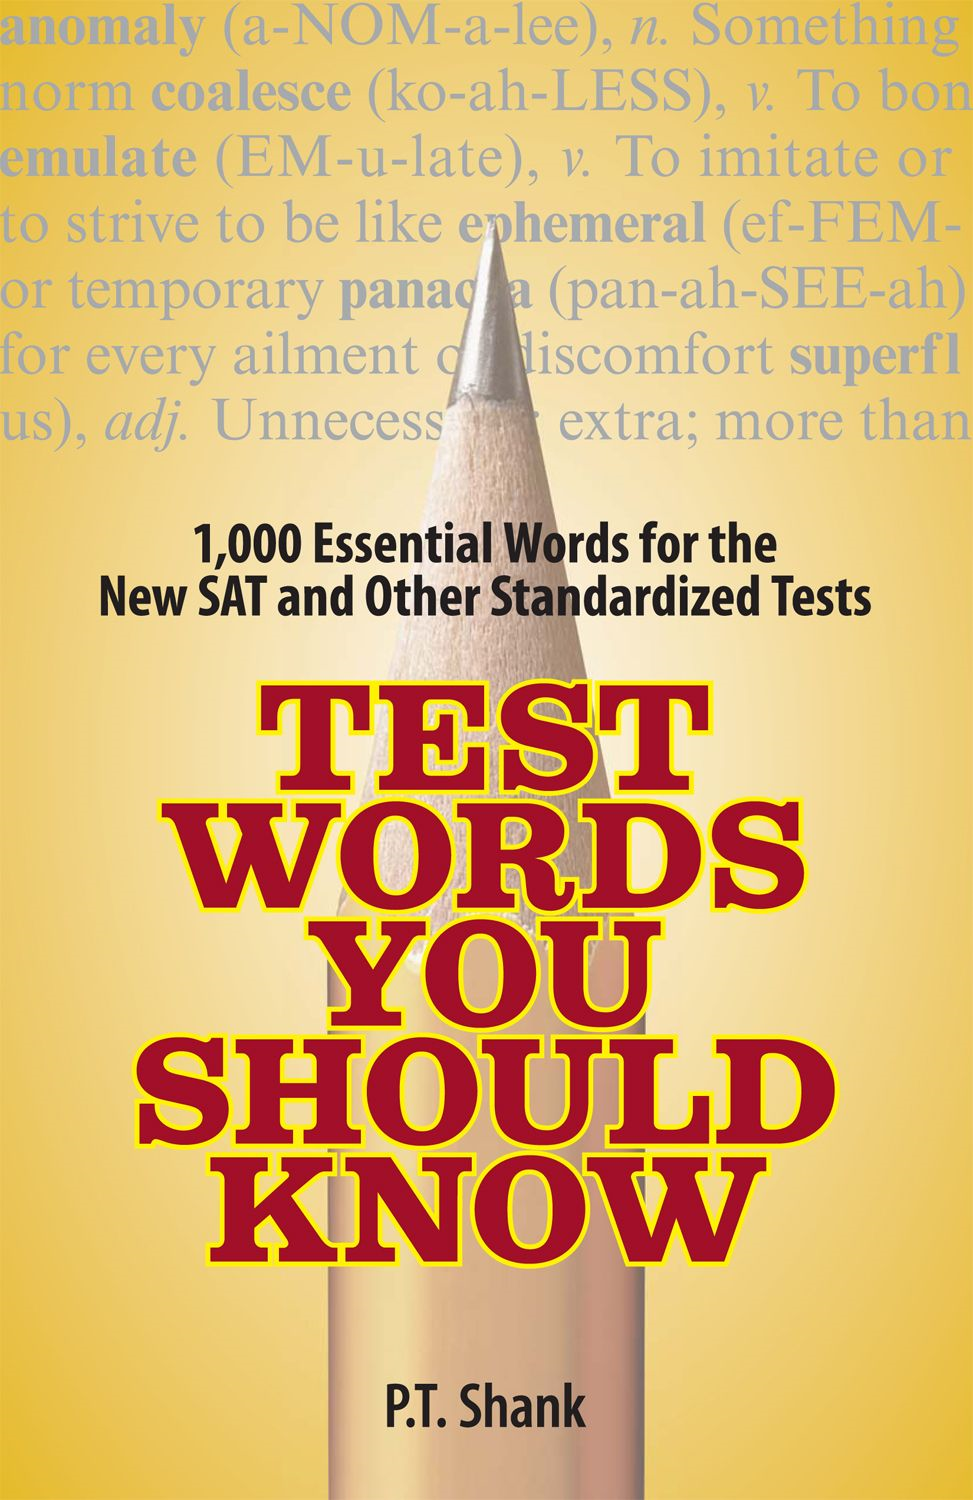 Test Words You Should Know: 1,000 Essential Words for the New SAT and Other Standardized Texts By: P. T. Shank